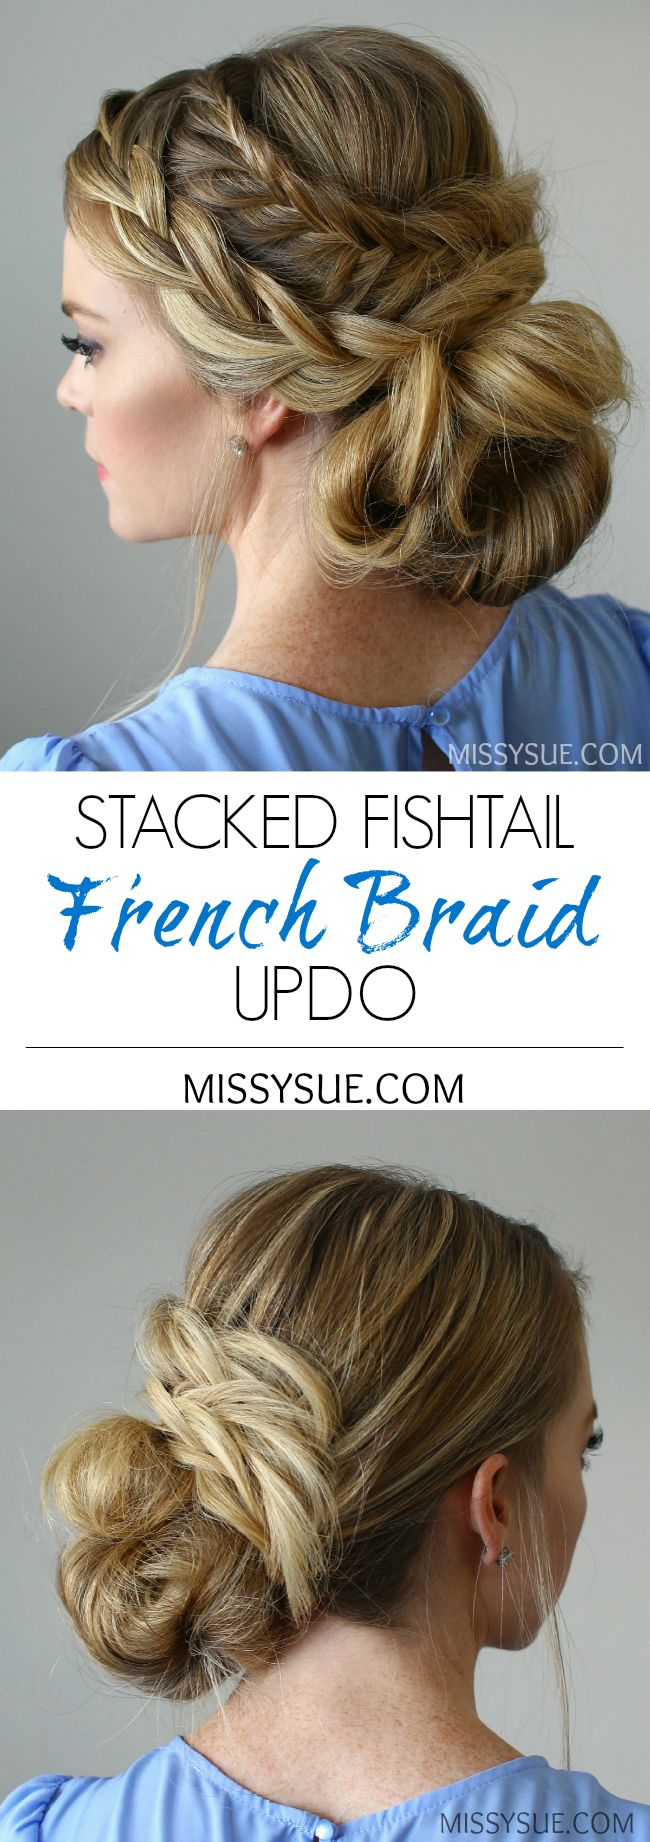 best 20+ french braid updo ideas on pinterest | french braided